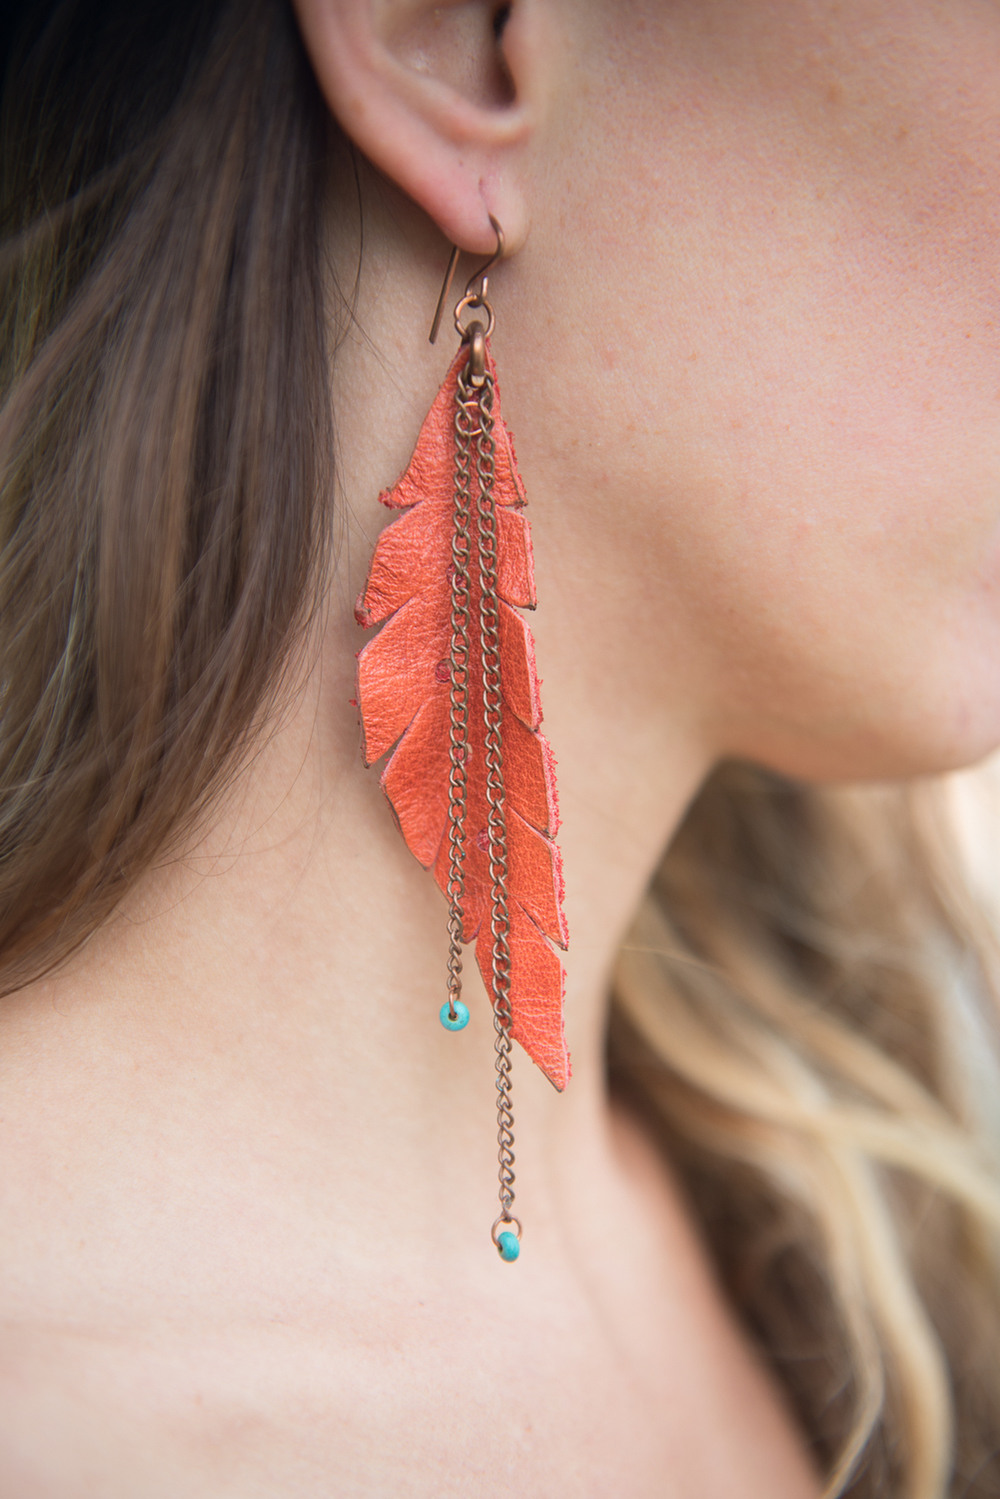 feather from leather scrap earrings